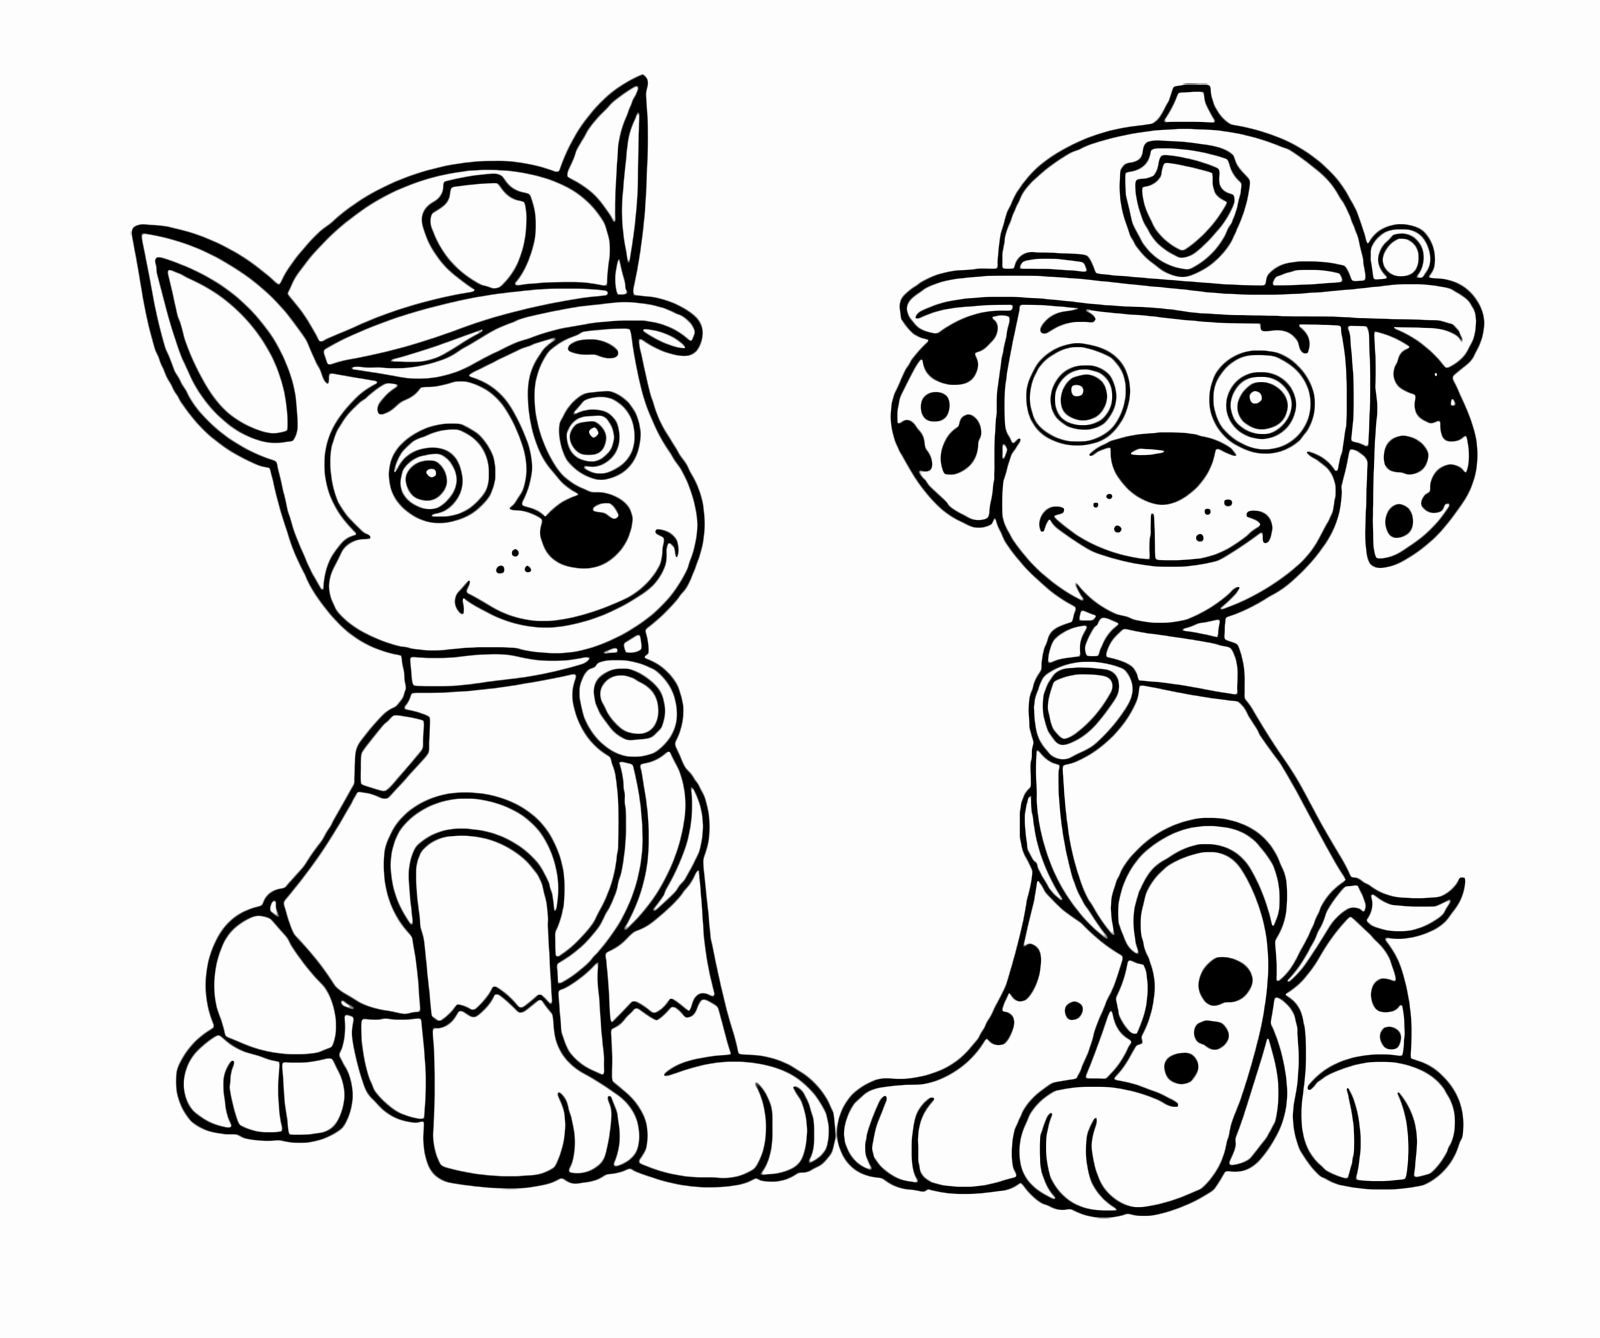 32 Marshall Paw Patrol Coloring Page In 2020 Paw Patrol Coloring